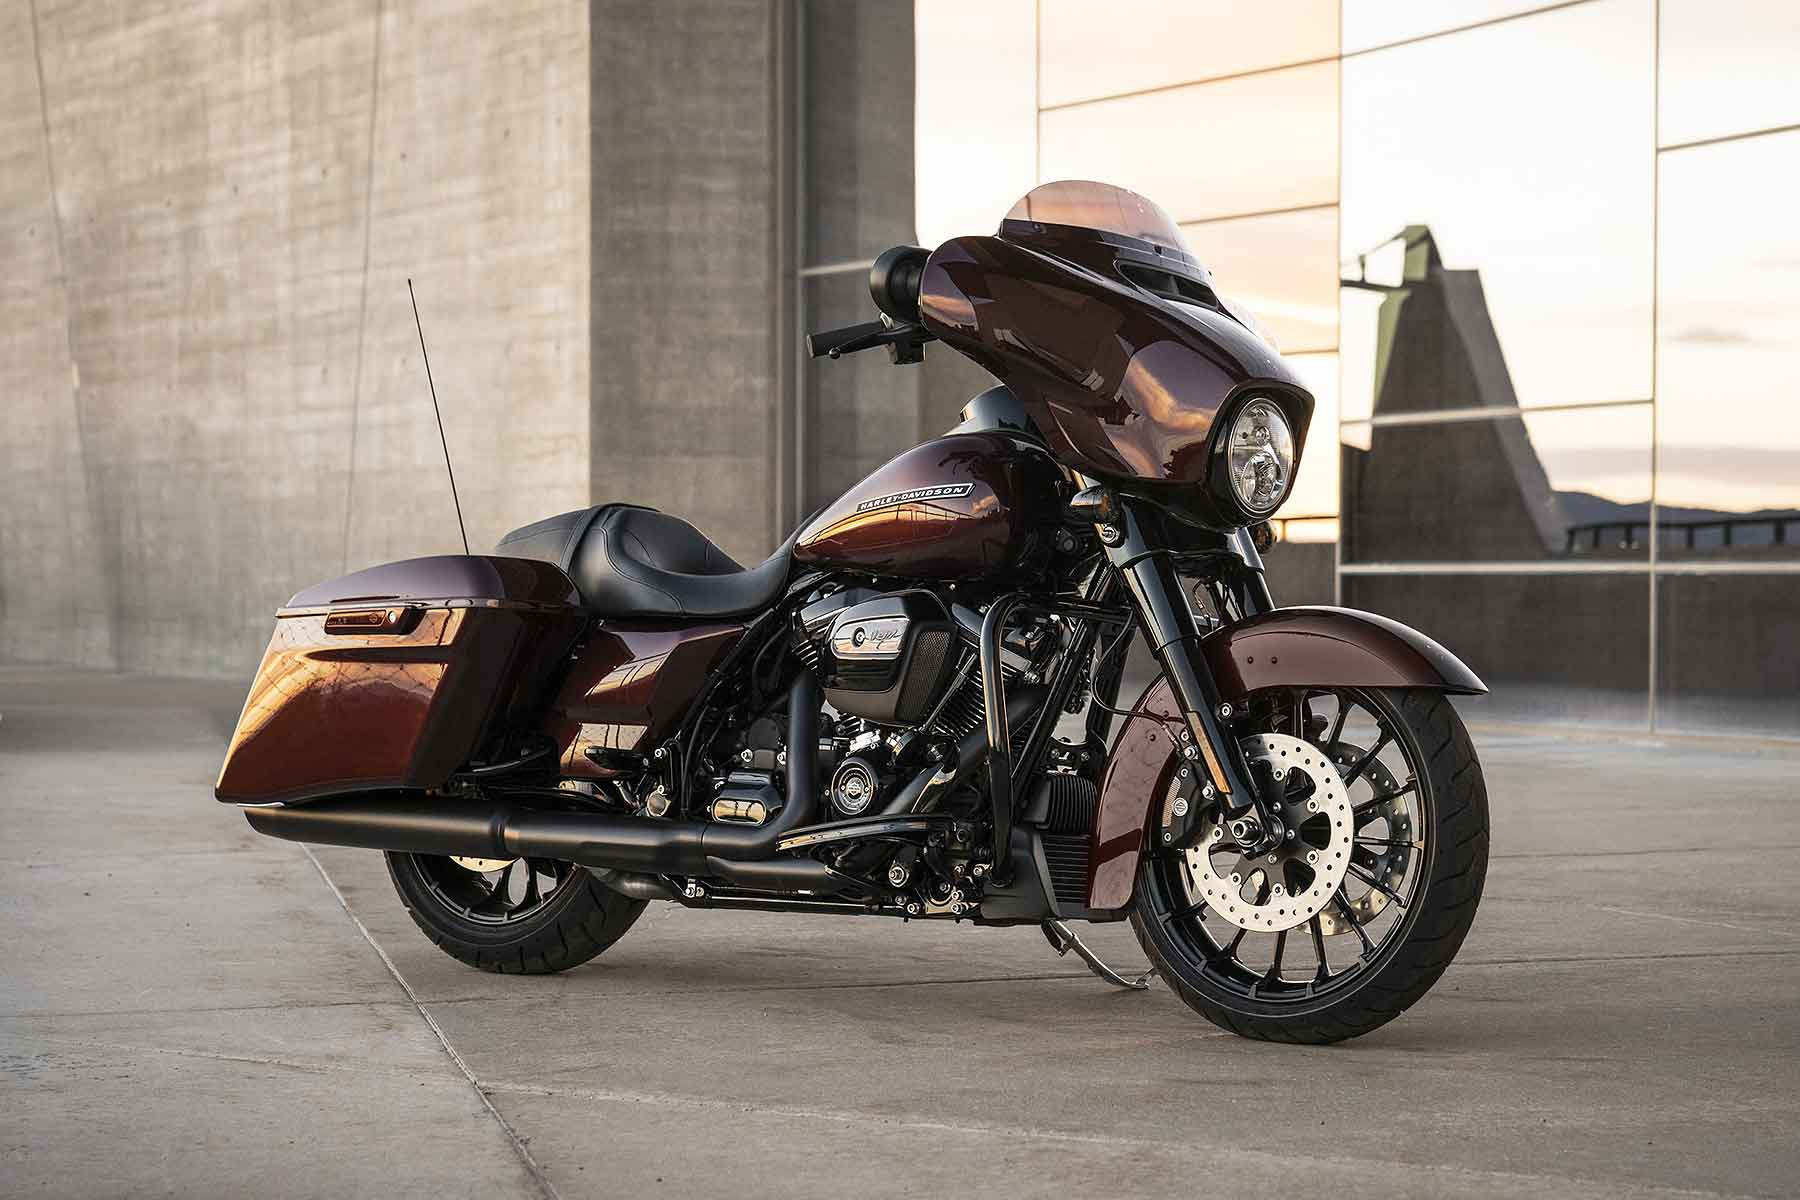 harley davidson is shifting production out of america to avoid eu tariffs motoring research. Black Bedroom Furniture Sets. Home Design Ideas